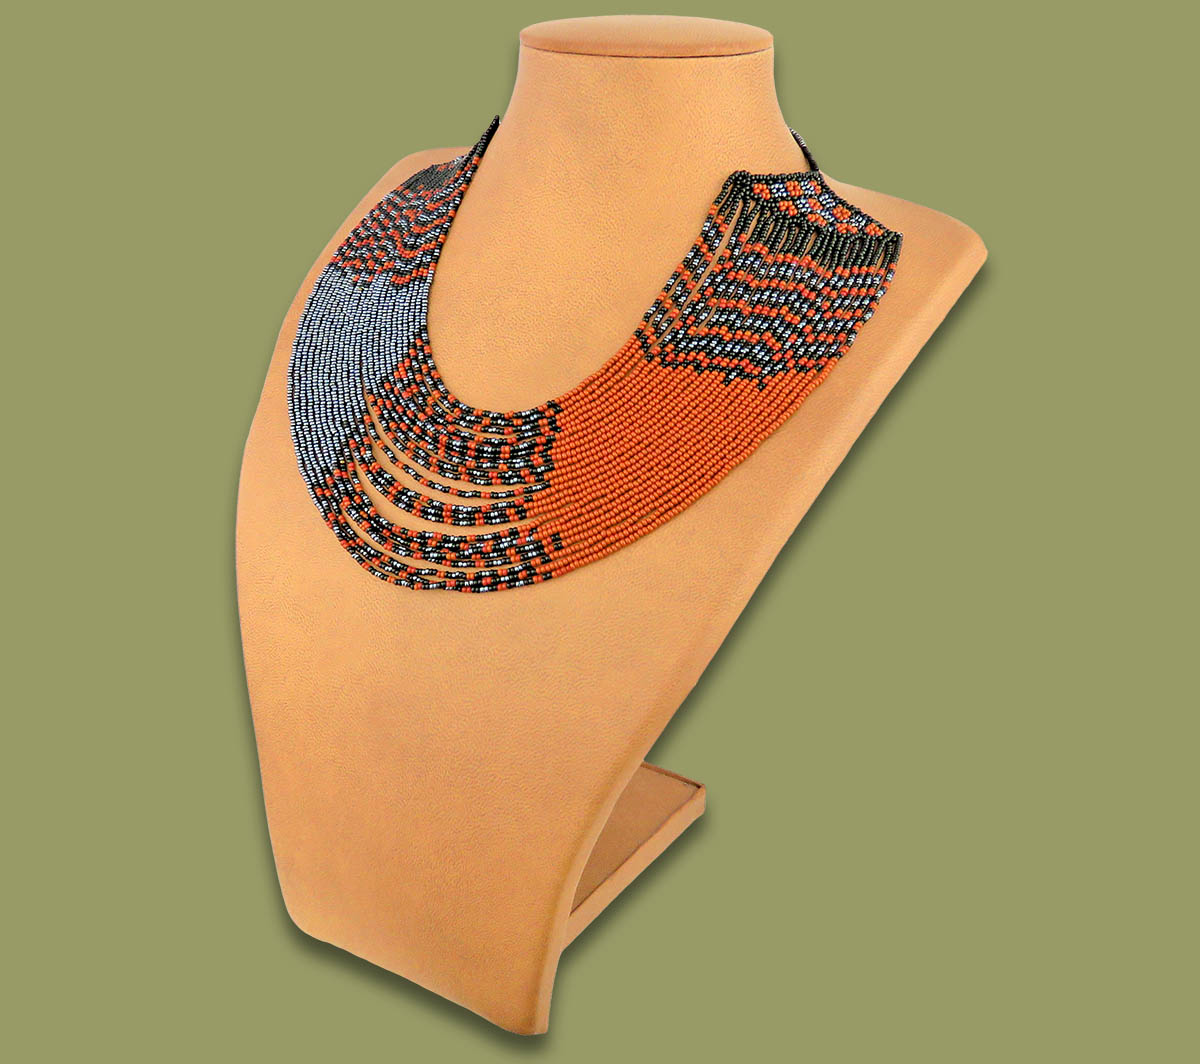 Beaded Necklace Sibaya Brown Black Metallic